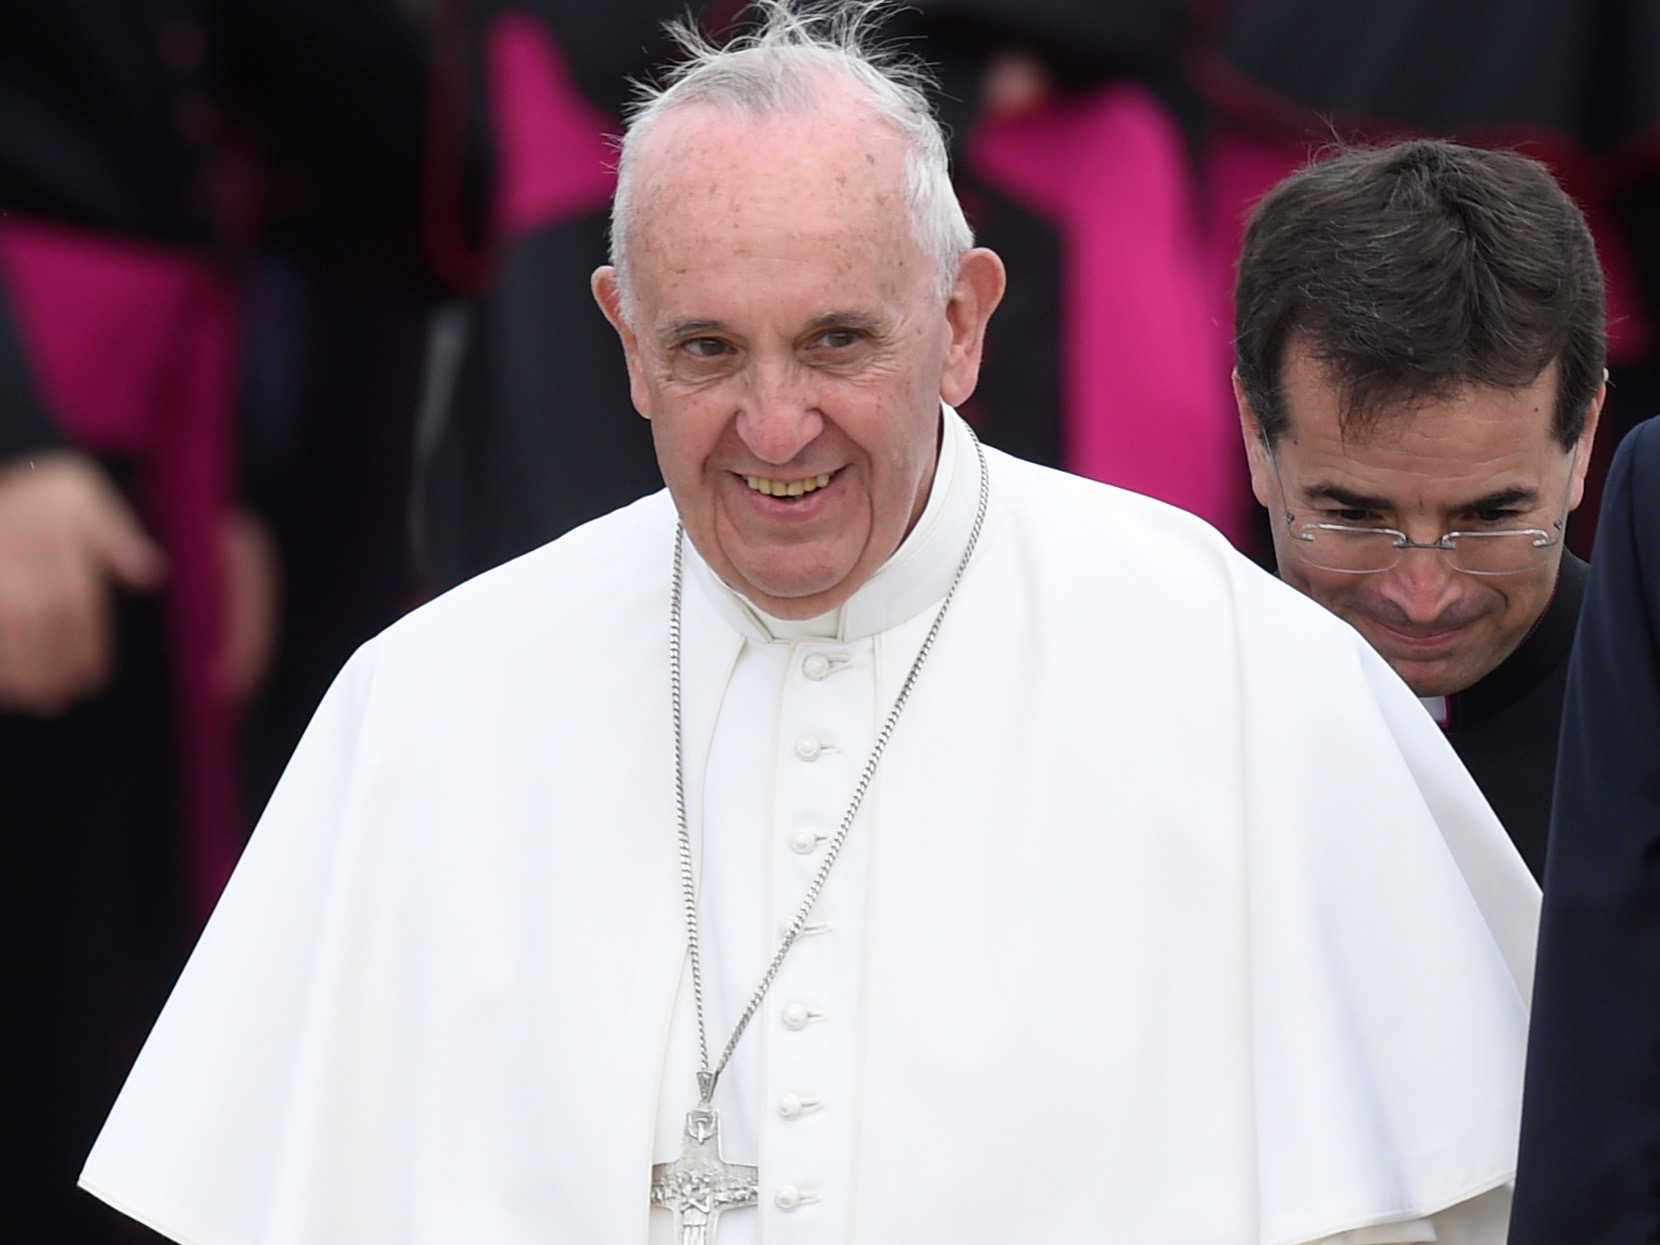 a look at the papacy The duties of the pope, and what happens when the office is vacant  he's  looking at a very broad overview of the universal church, the.